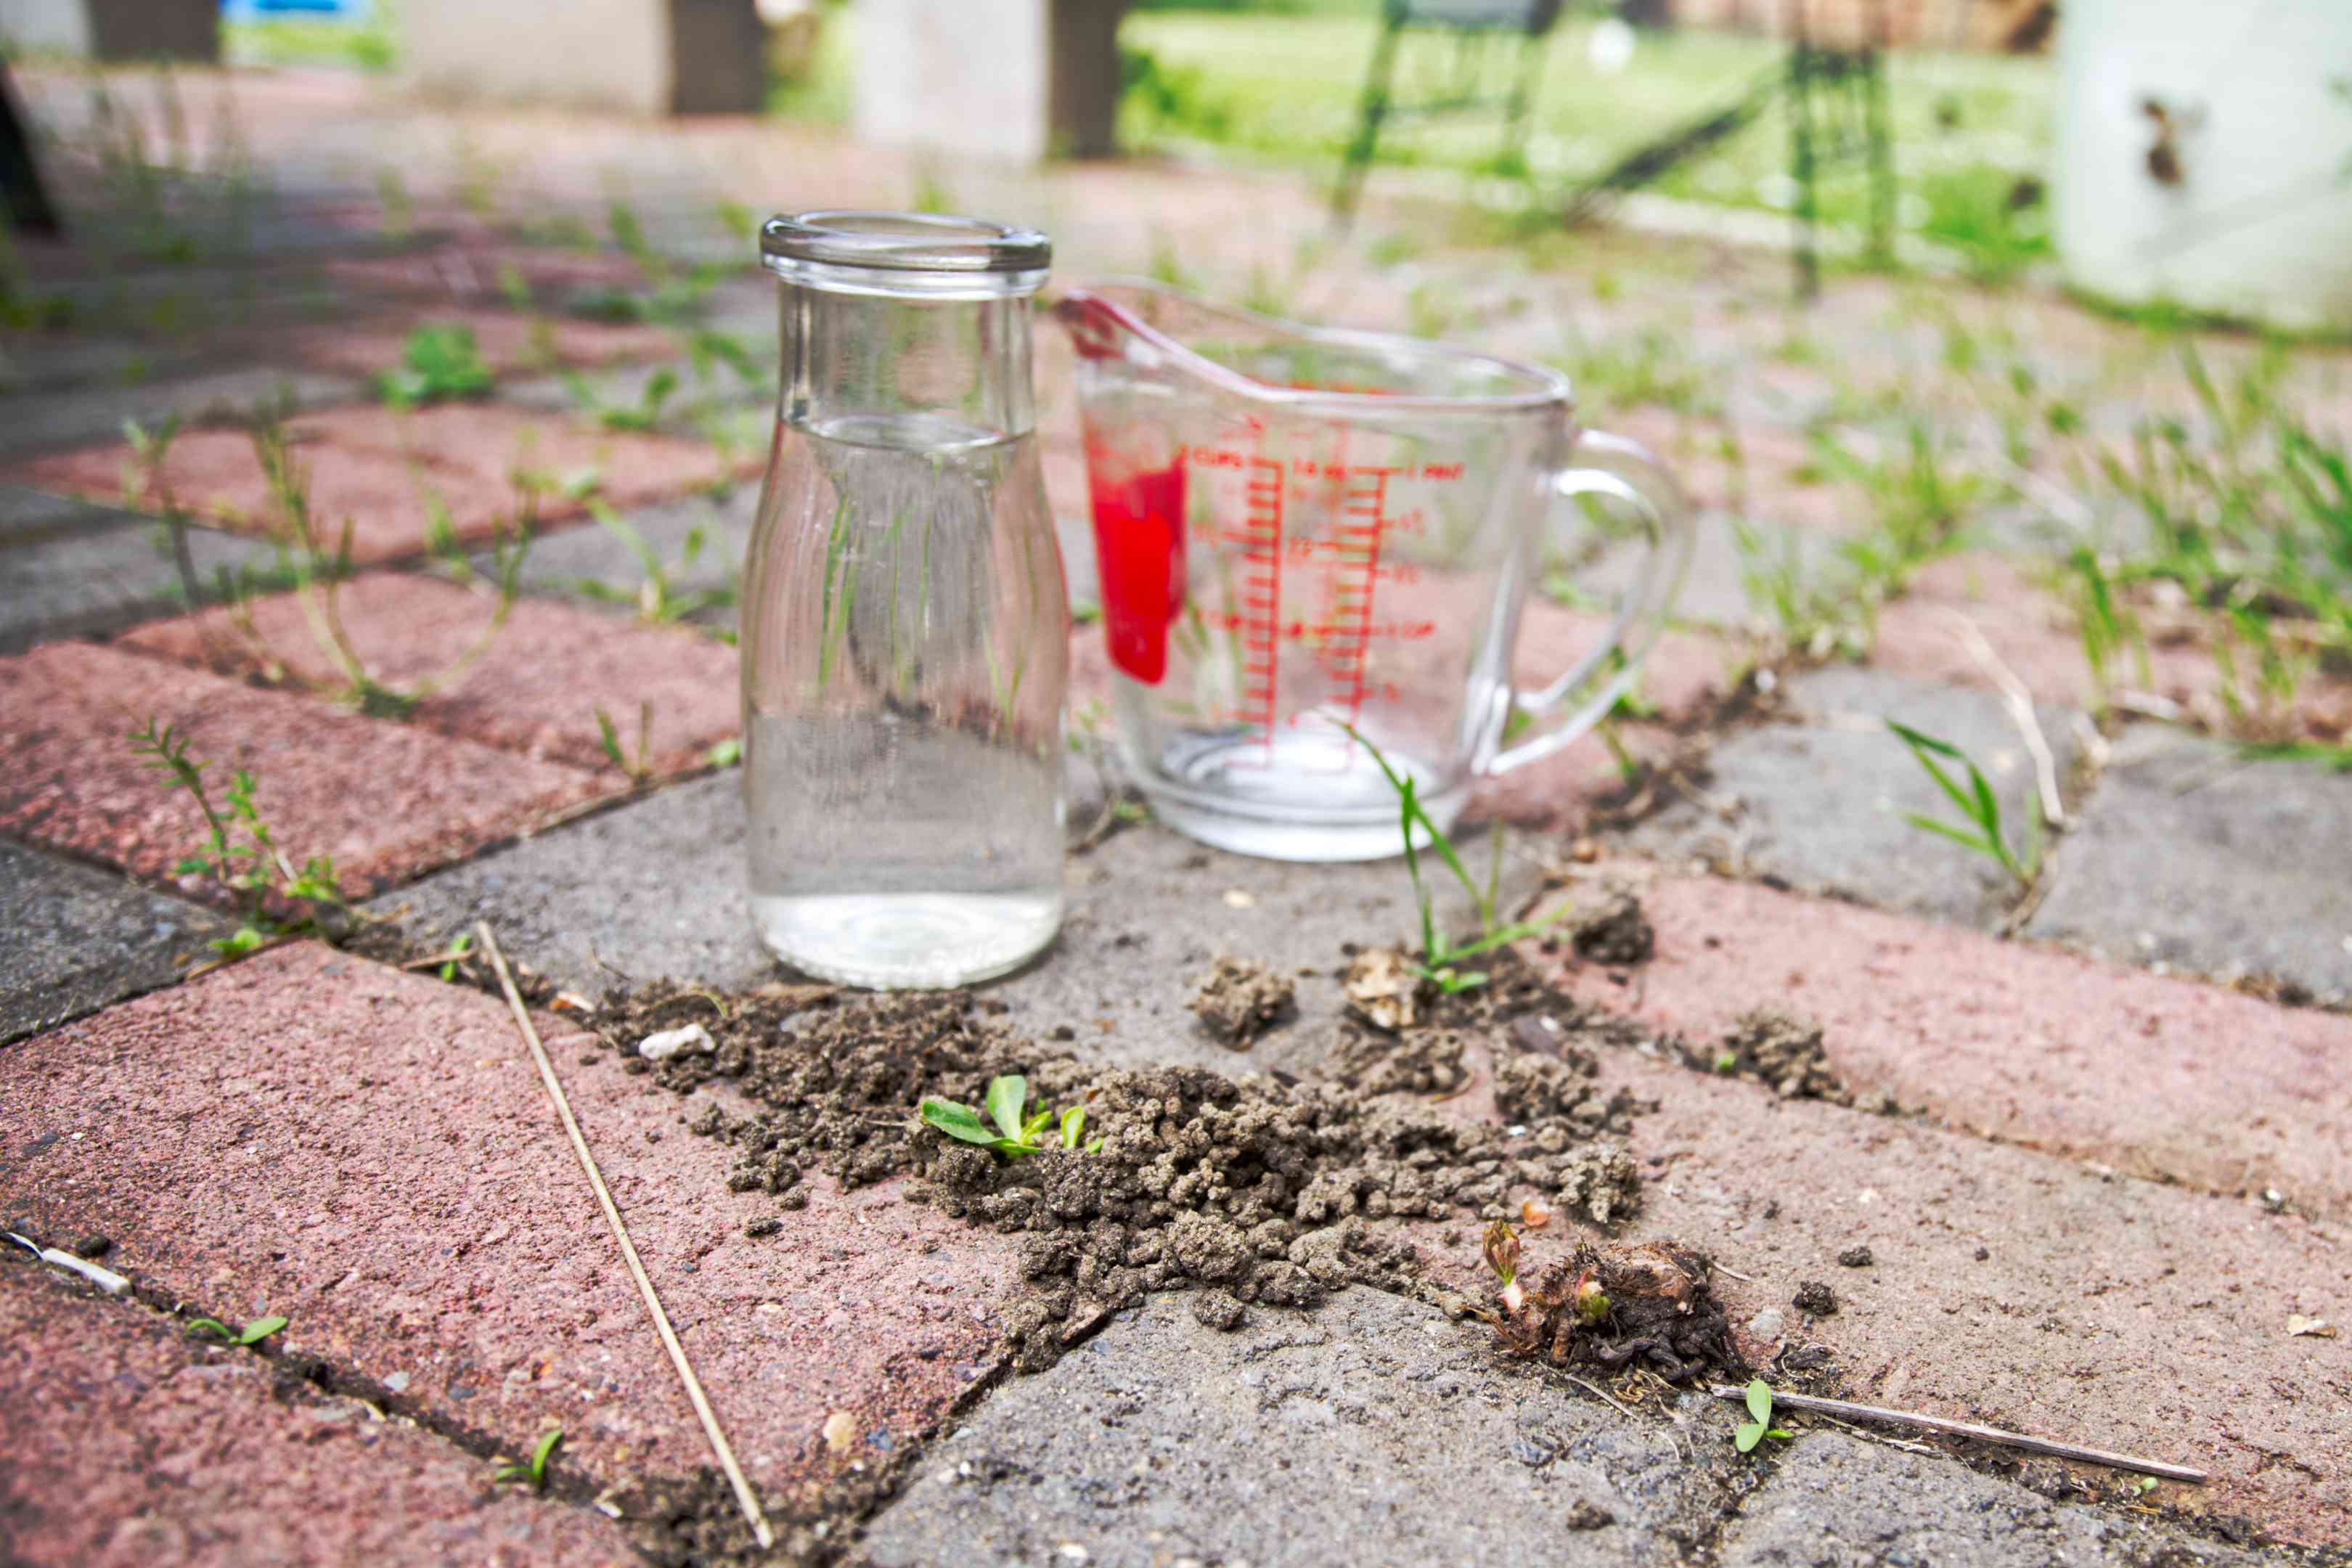 upcycled milk jar with white vinegar and measuring cup on brick patio outside